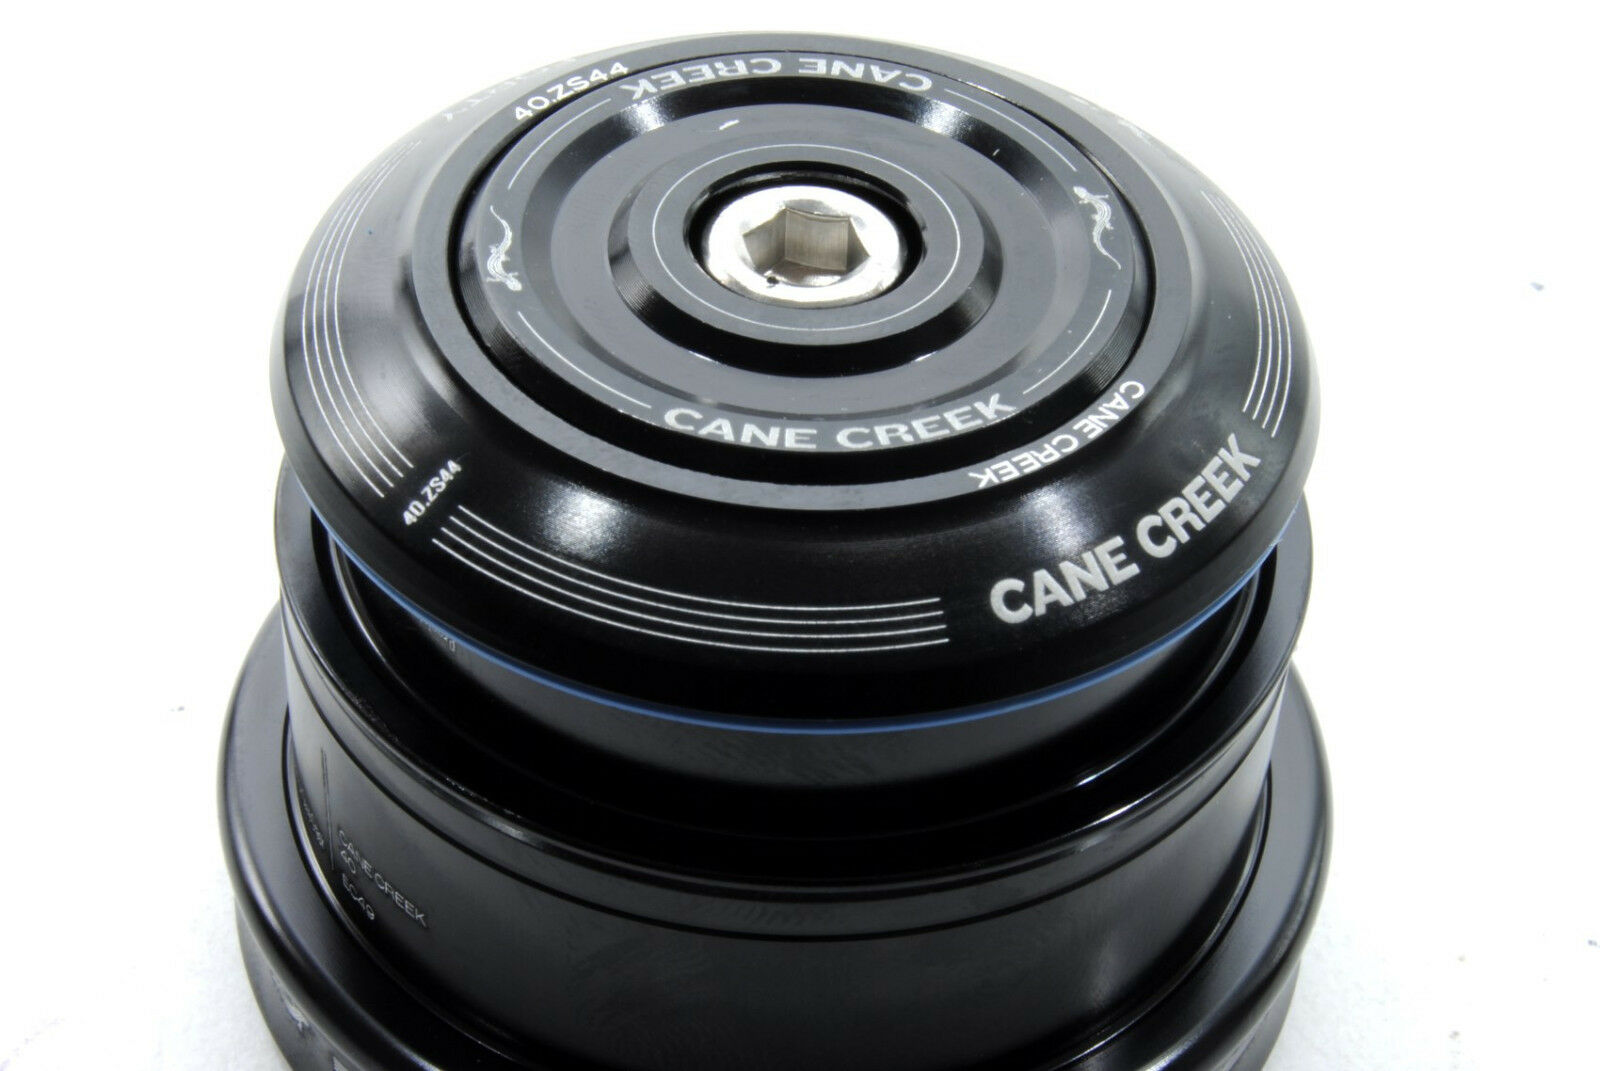 Cane Creek 40 ZS44//28.6 EC49//40 Tapered Headset Tapered Steerer Black Bicycle